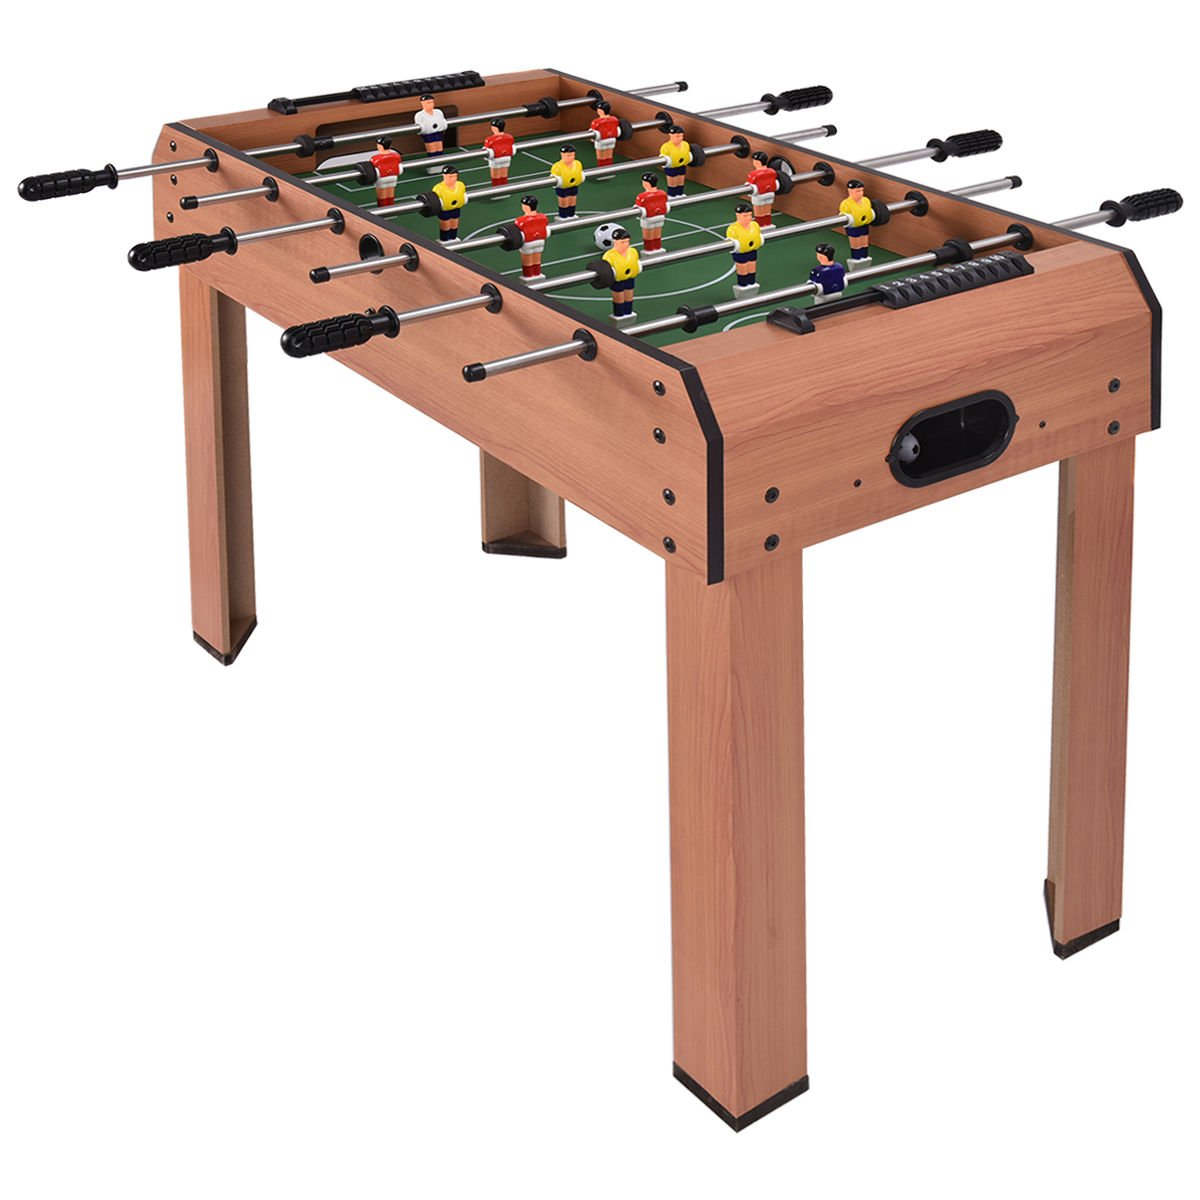 Giantex 37'' Foosball Soccer Competition Table Top Set Game Room Sports with Legs by Giantex